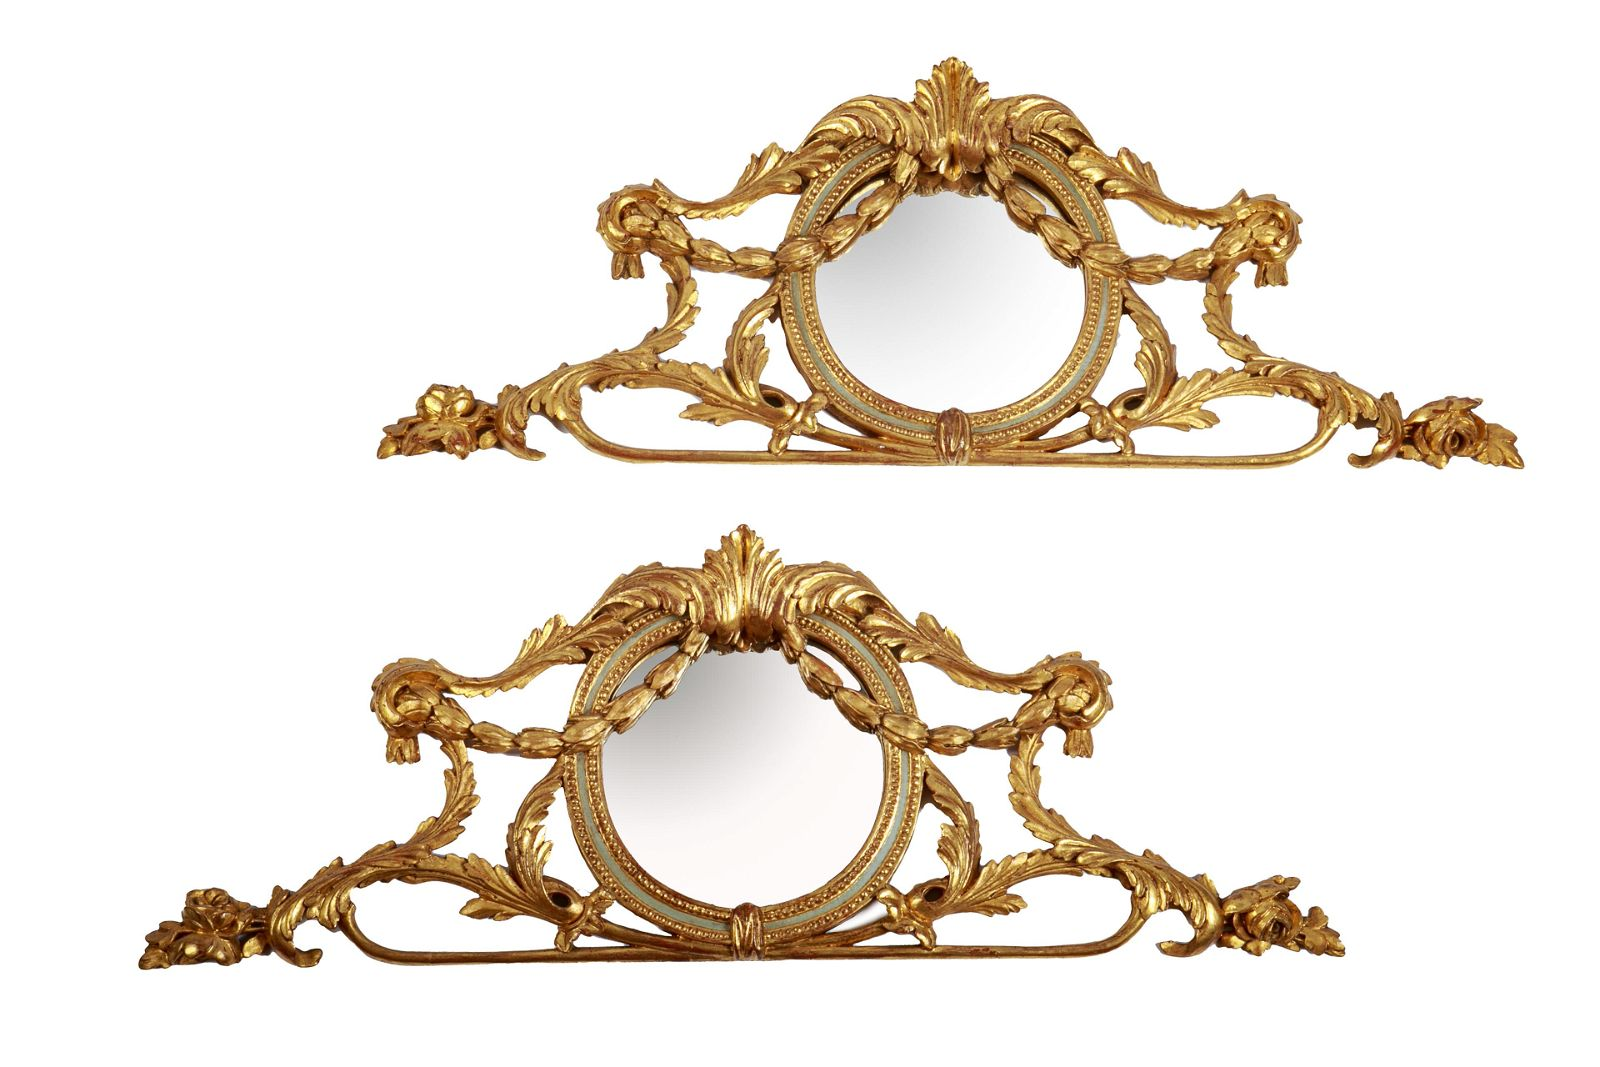 PAIR OF ANTIQUE CARVED GILT WOOD PEDIMENT MIRRORS